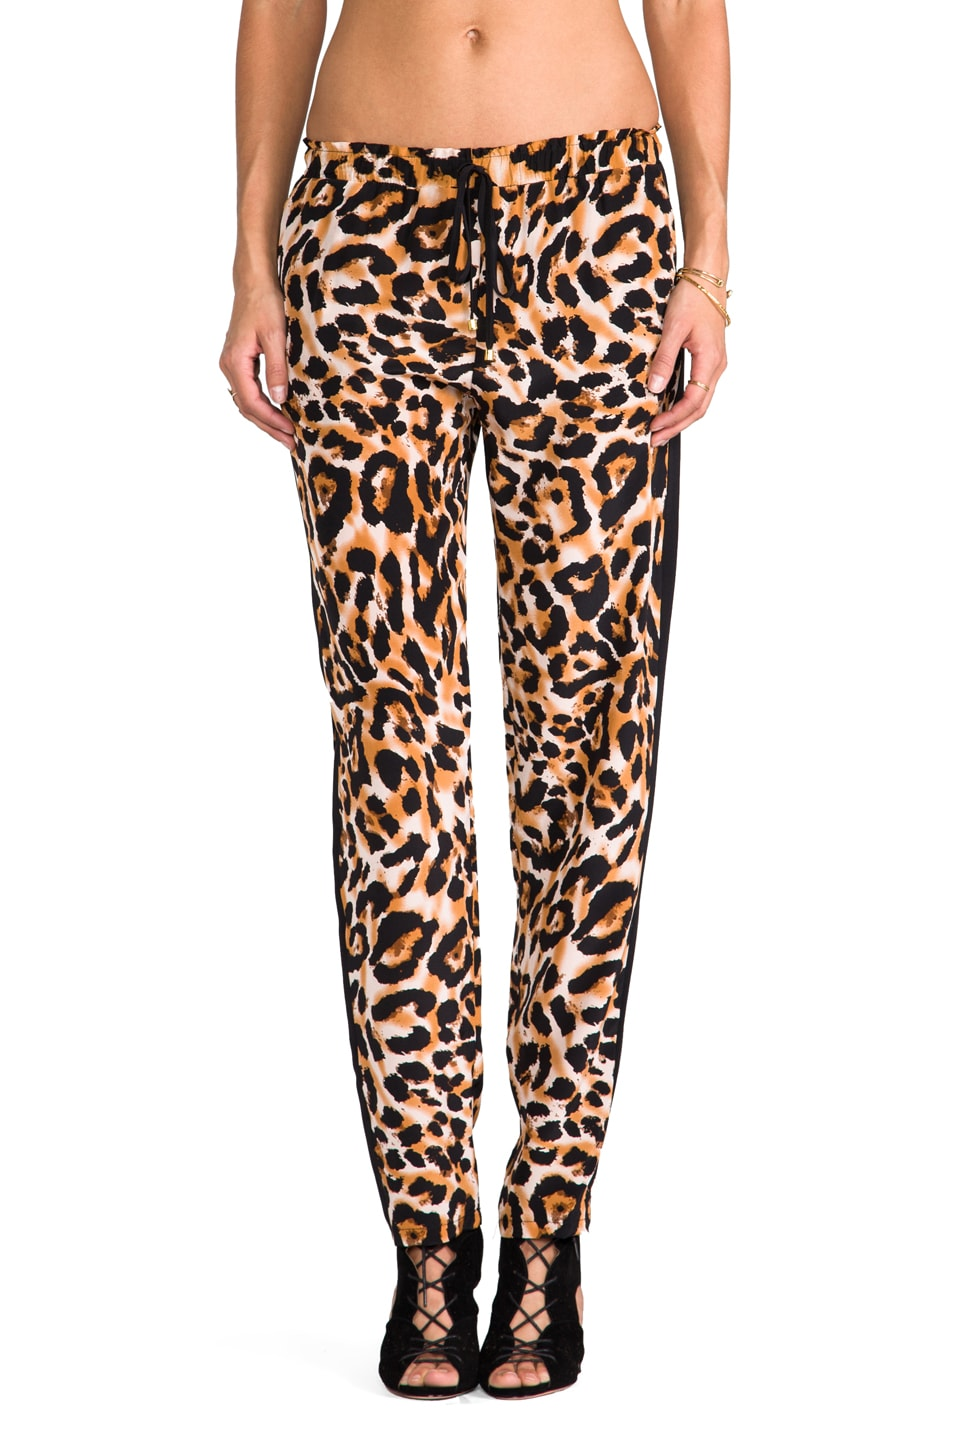 Karina Grimaldi Petunia Combo Pants in Animal Camel